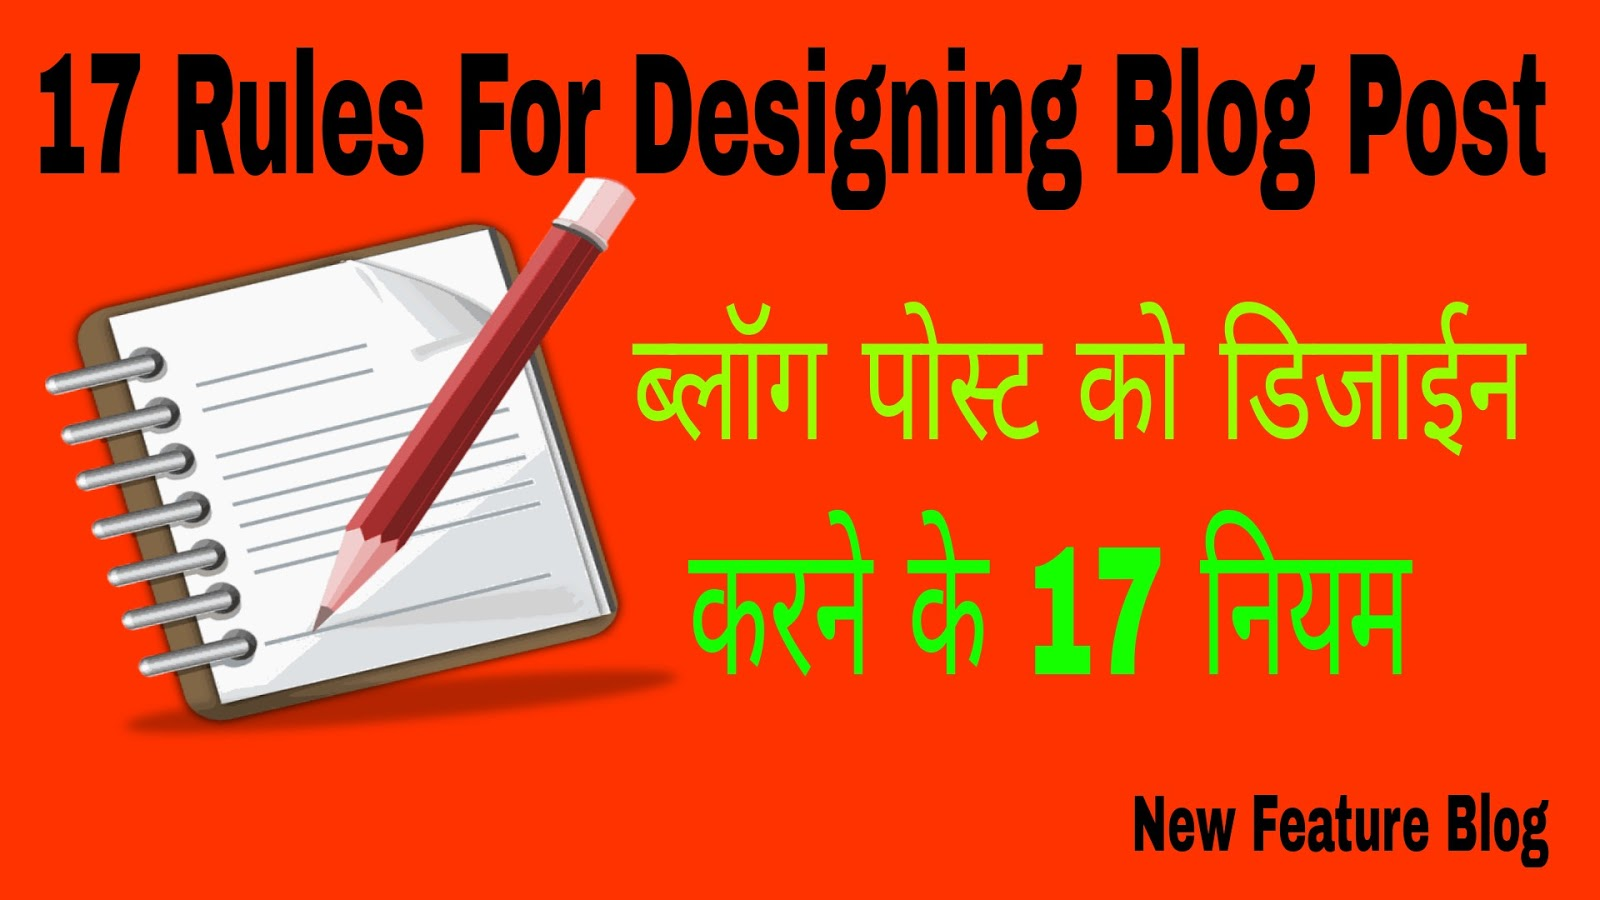 17 rules for designing blog post